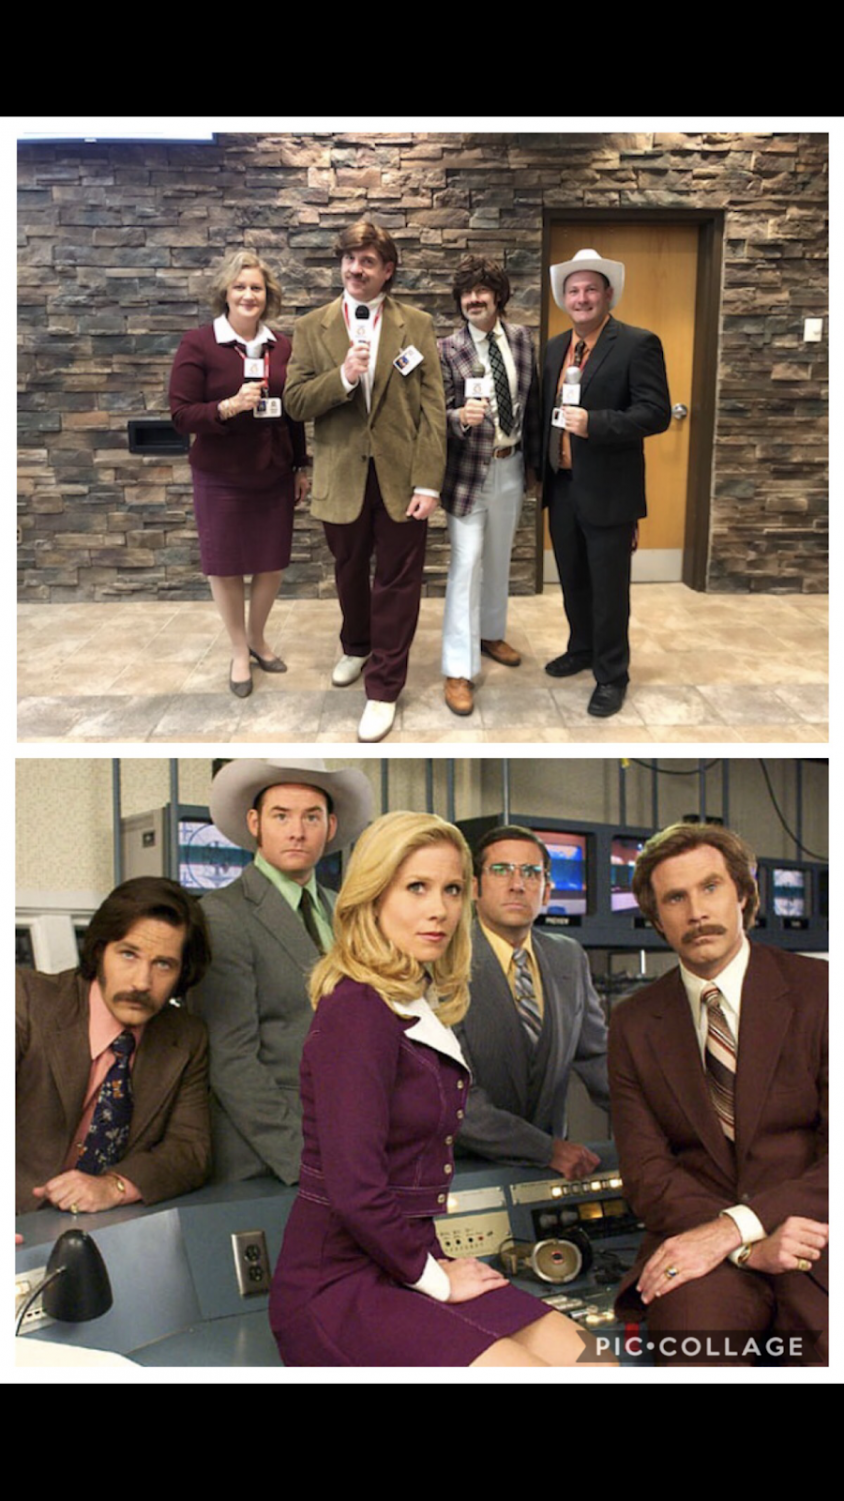 Pictured are administrators Mrs. Sczcesniak, Mr. Wolf, Mr. Fisher, and Mr. Lynch dressed as the crew from the movie The Anchorman.